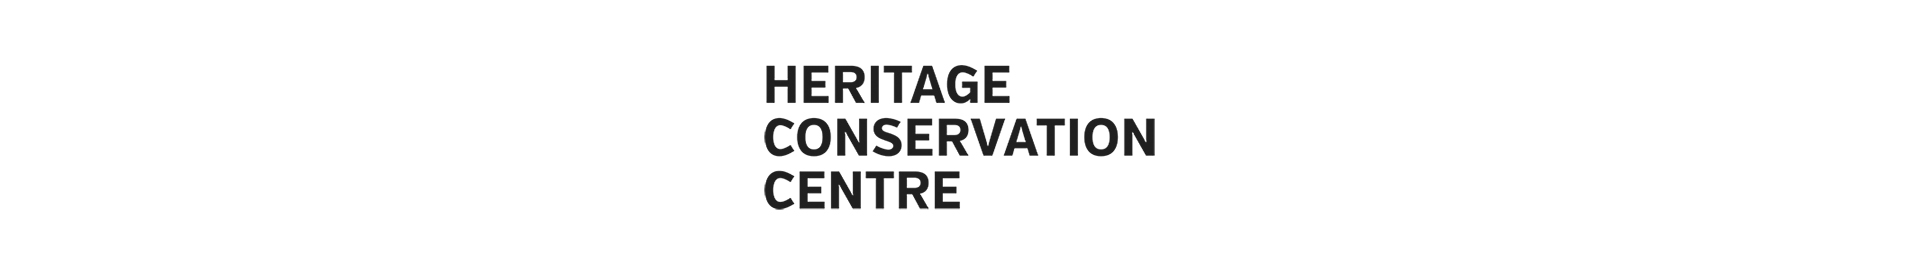 Heritage Conservation Centre